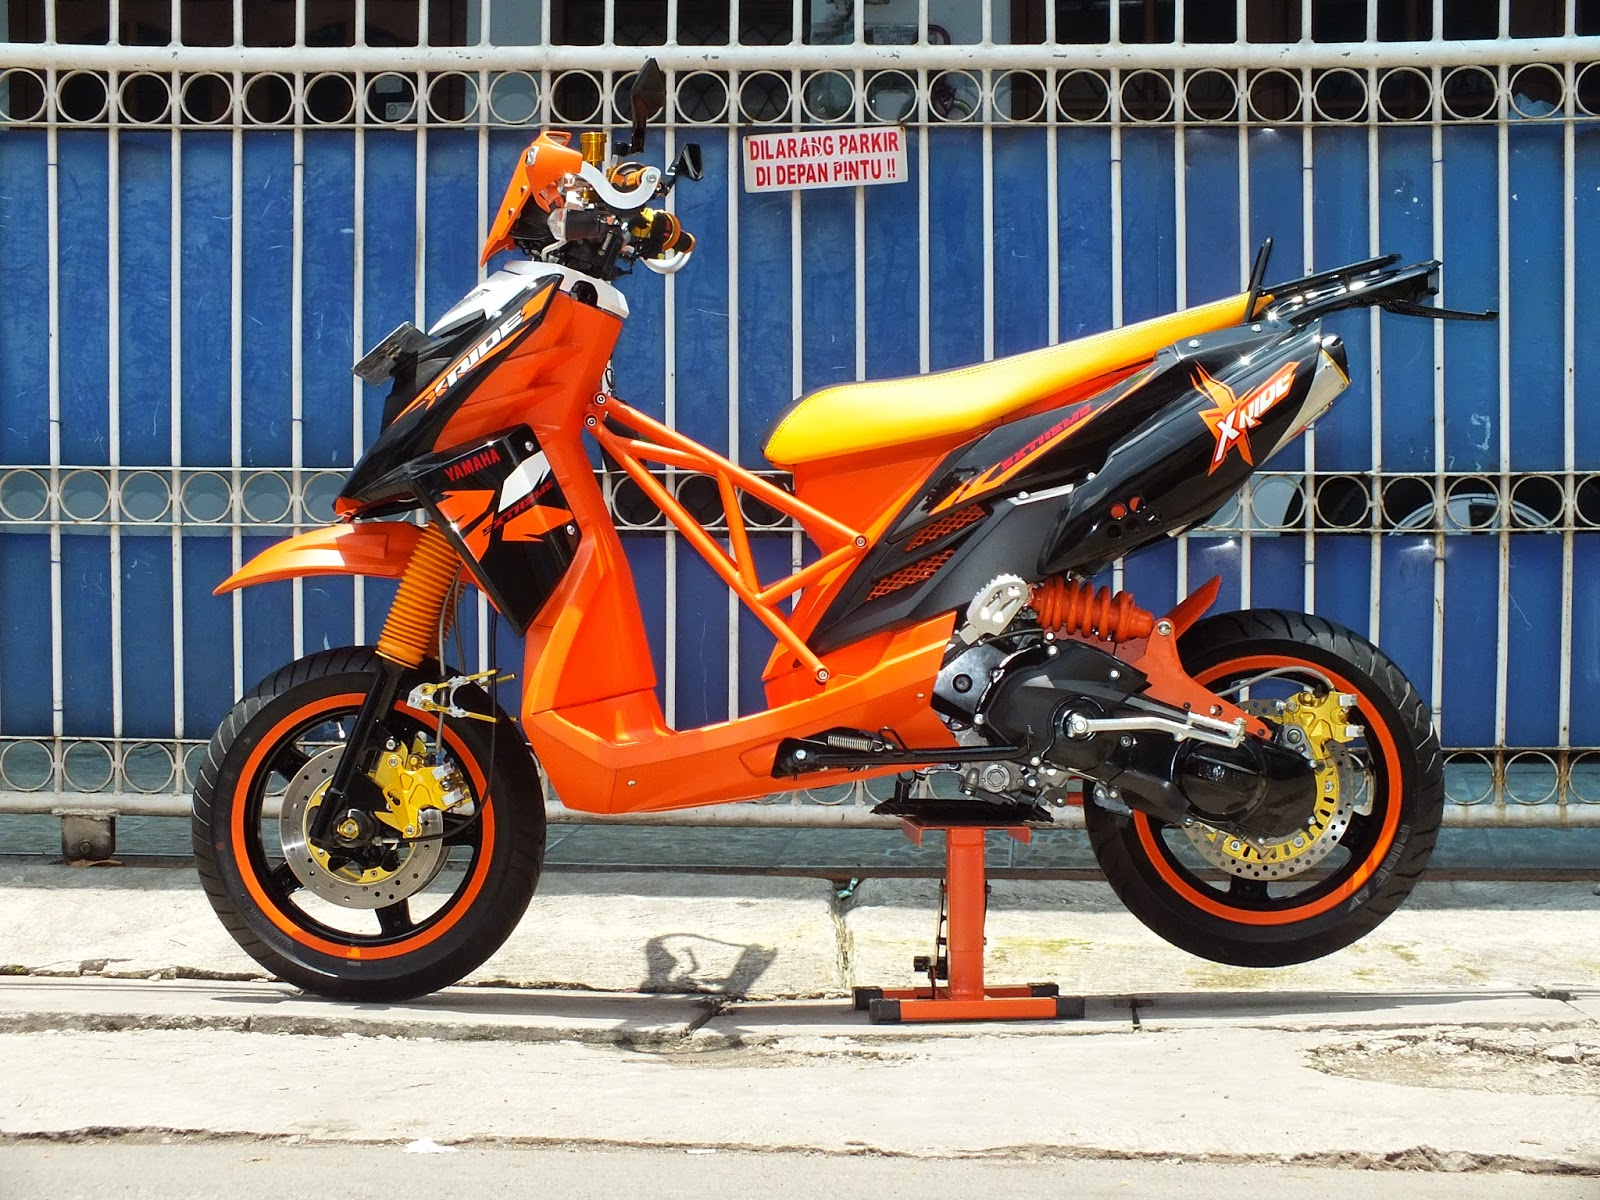 Download 93 Modifikasi Motor Matic Supermoto Terupdate Dinding Motor